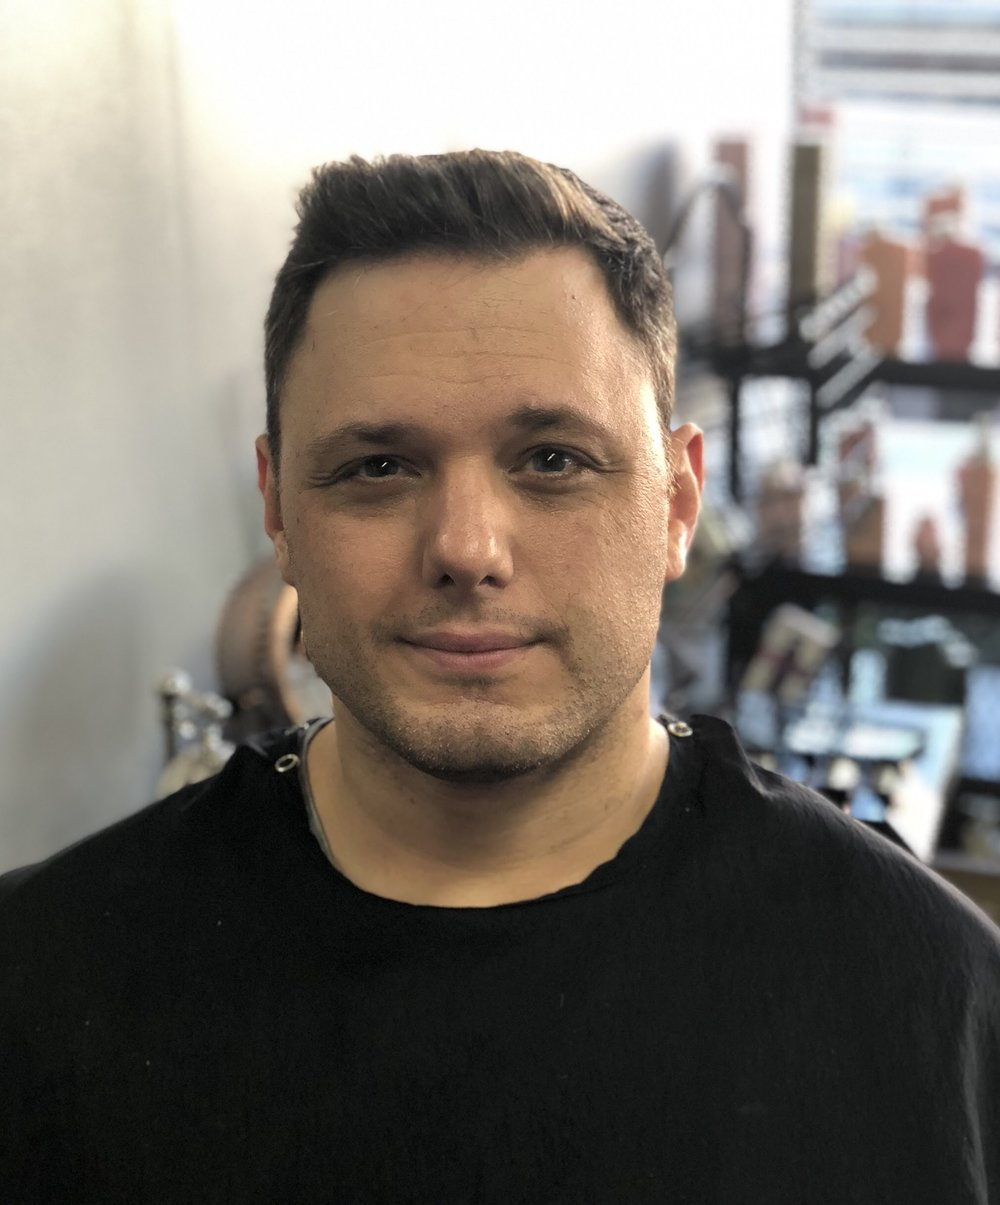 Professional Mens Cut Culver City.JPG